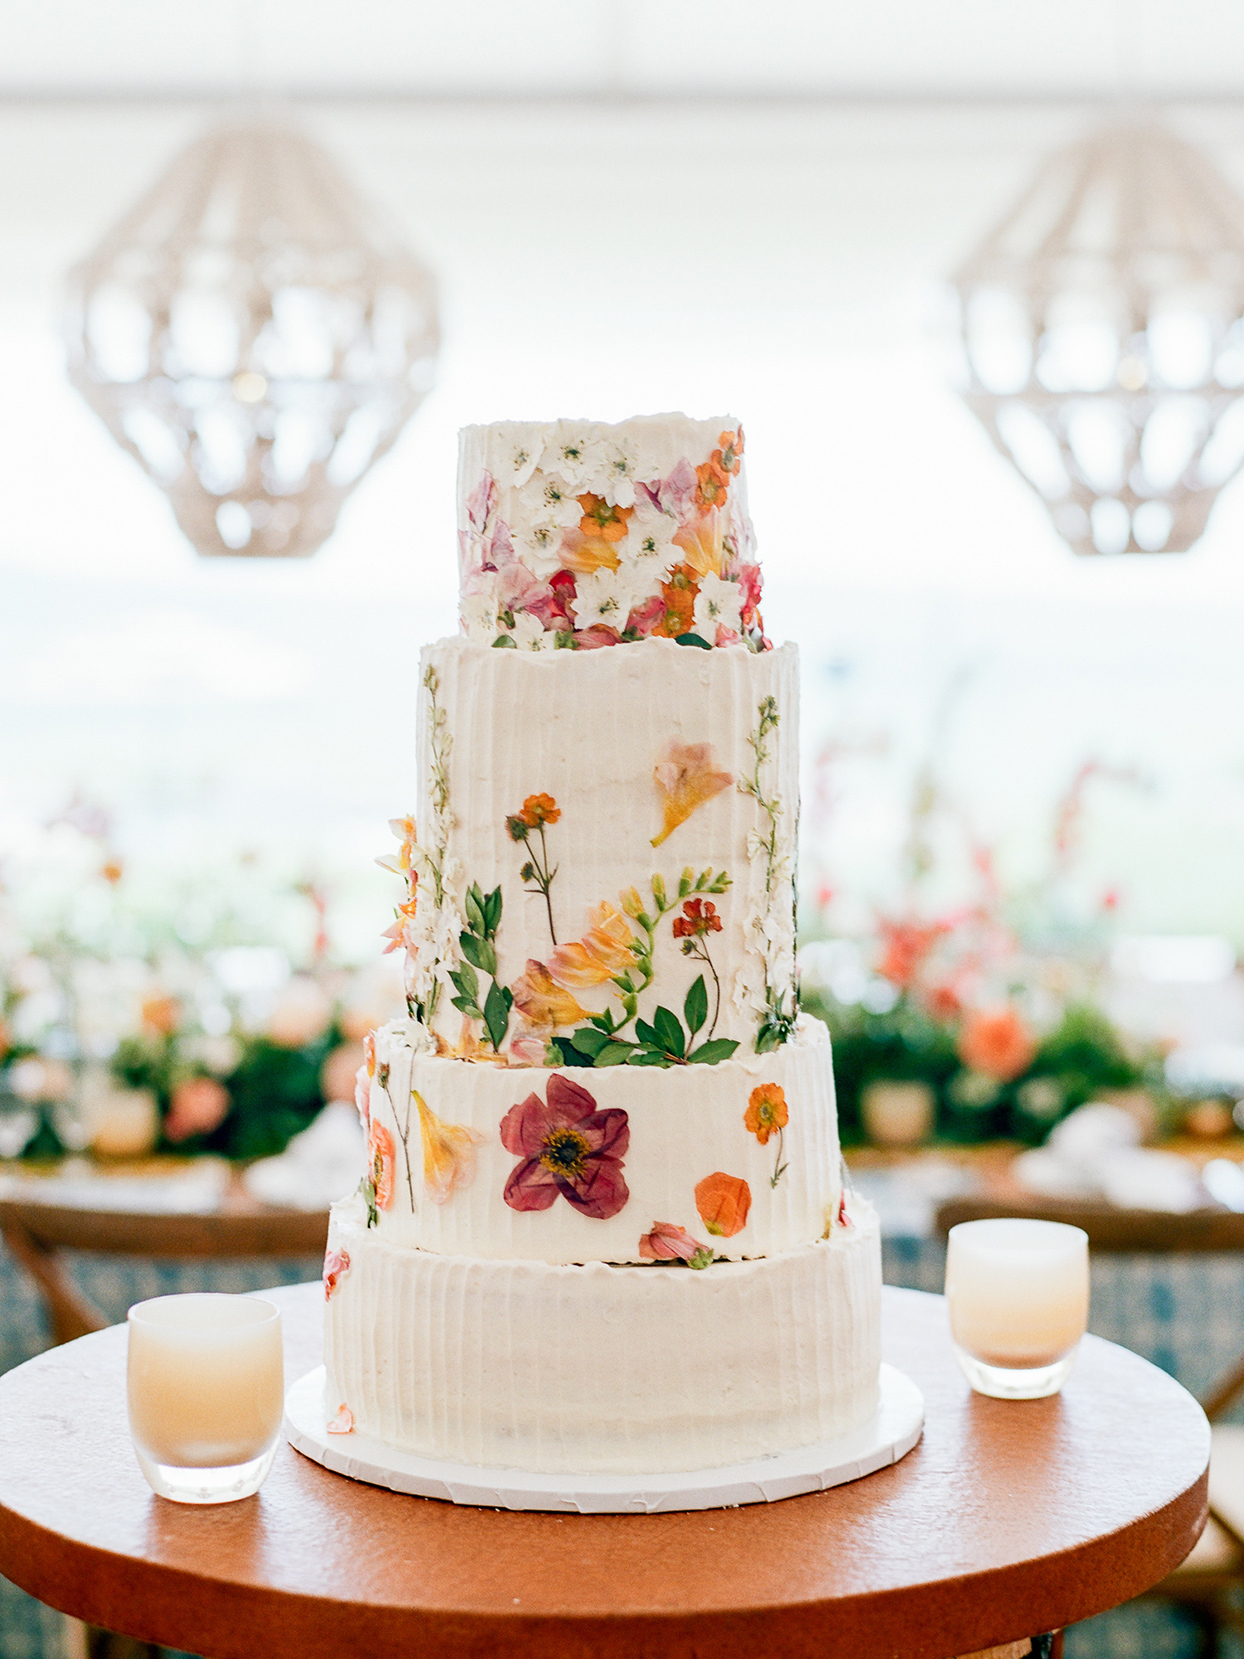 logan conor wedding cake with pressed flowers